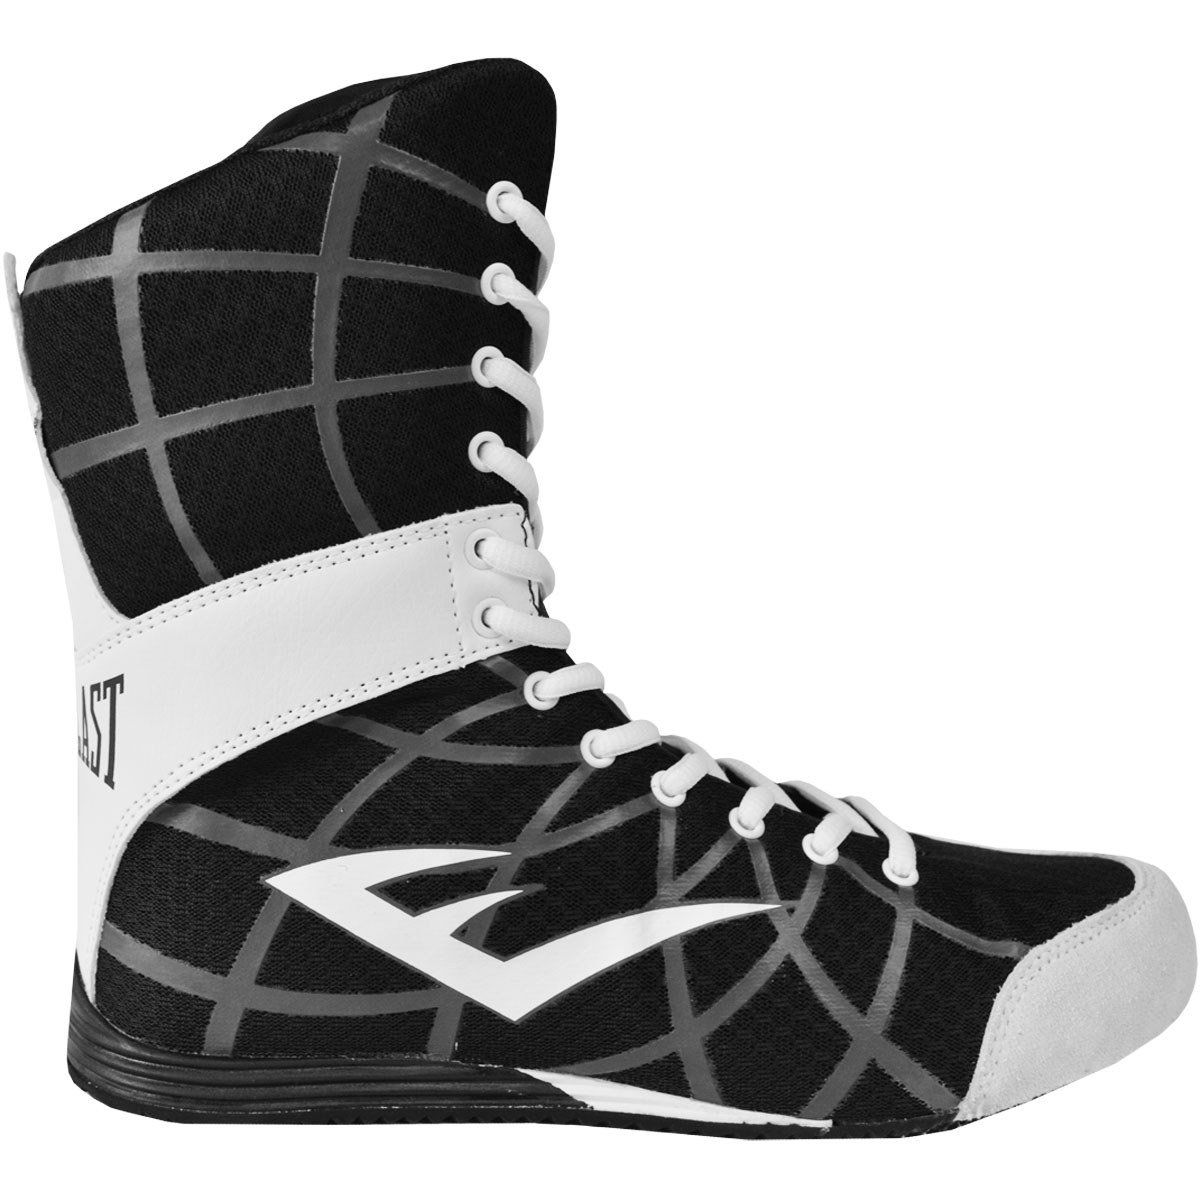 Everlast Grid High Top Boxing Shoes Black Boots Mma